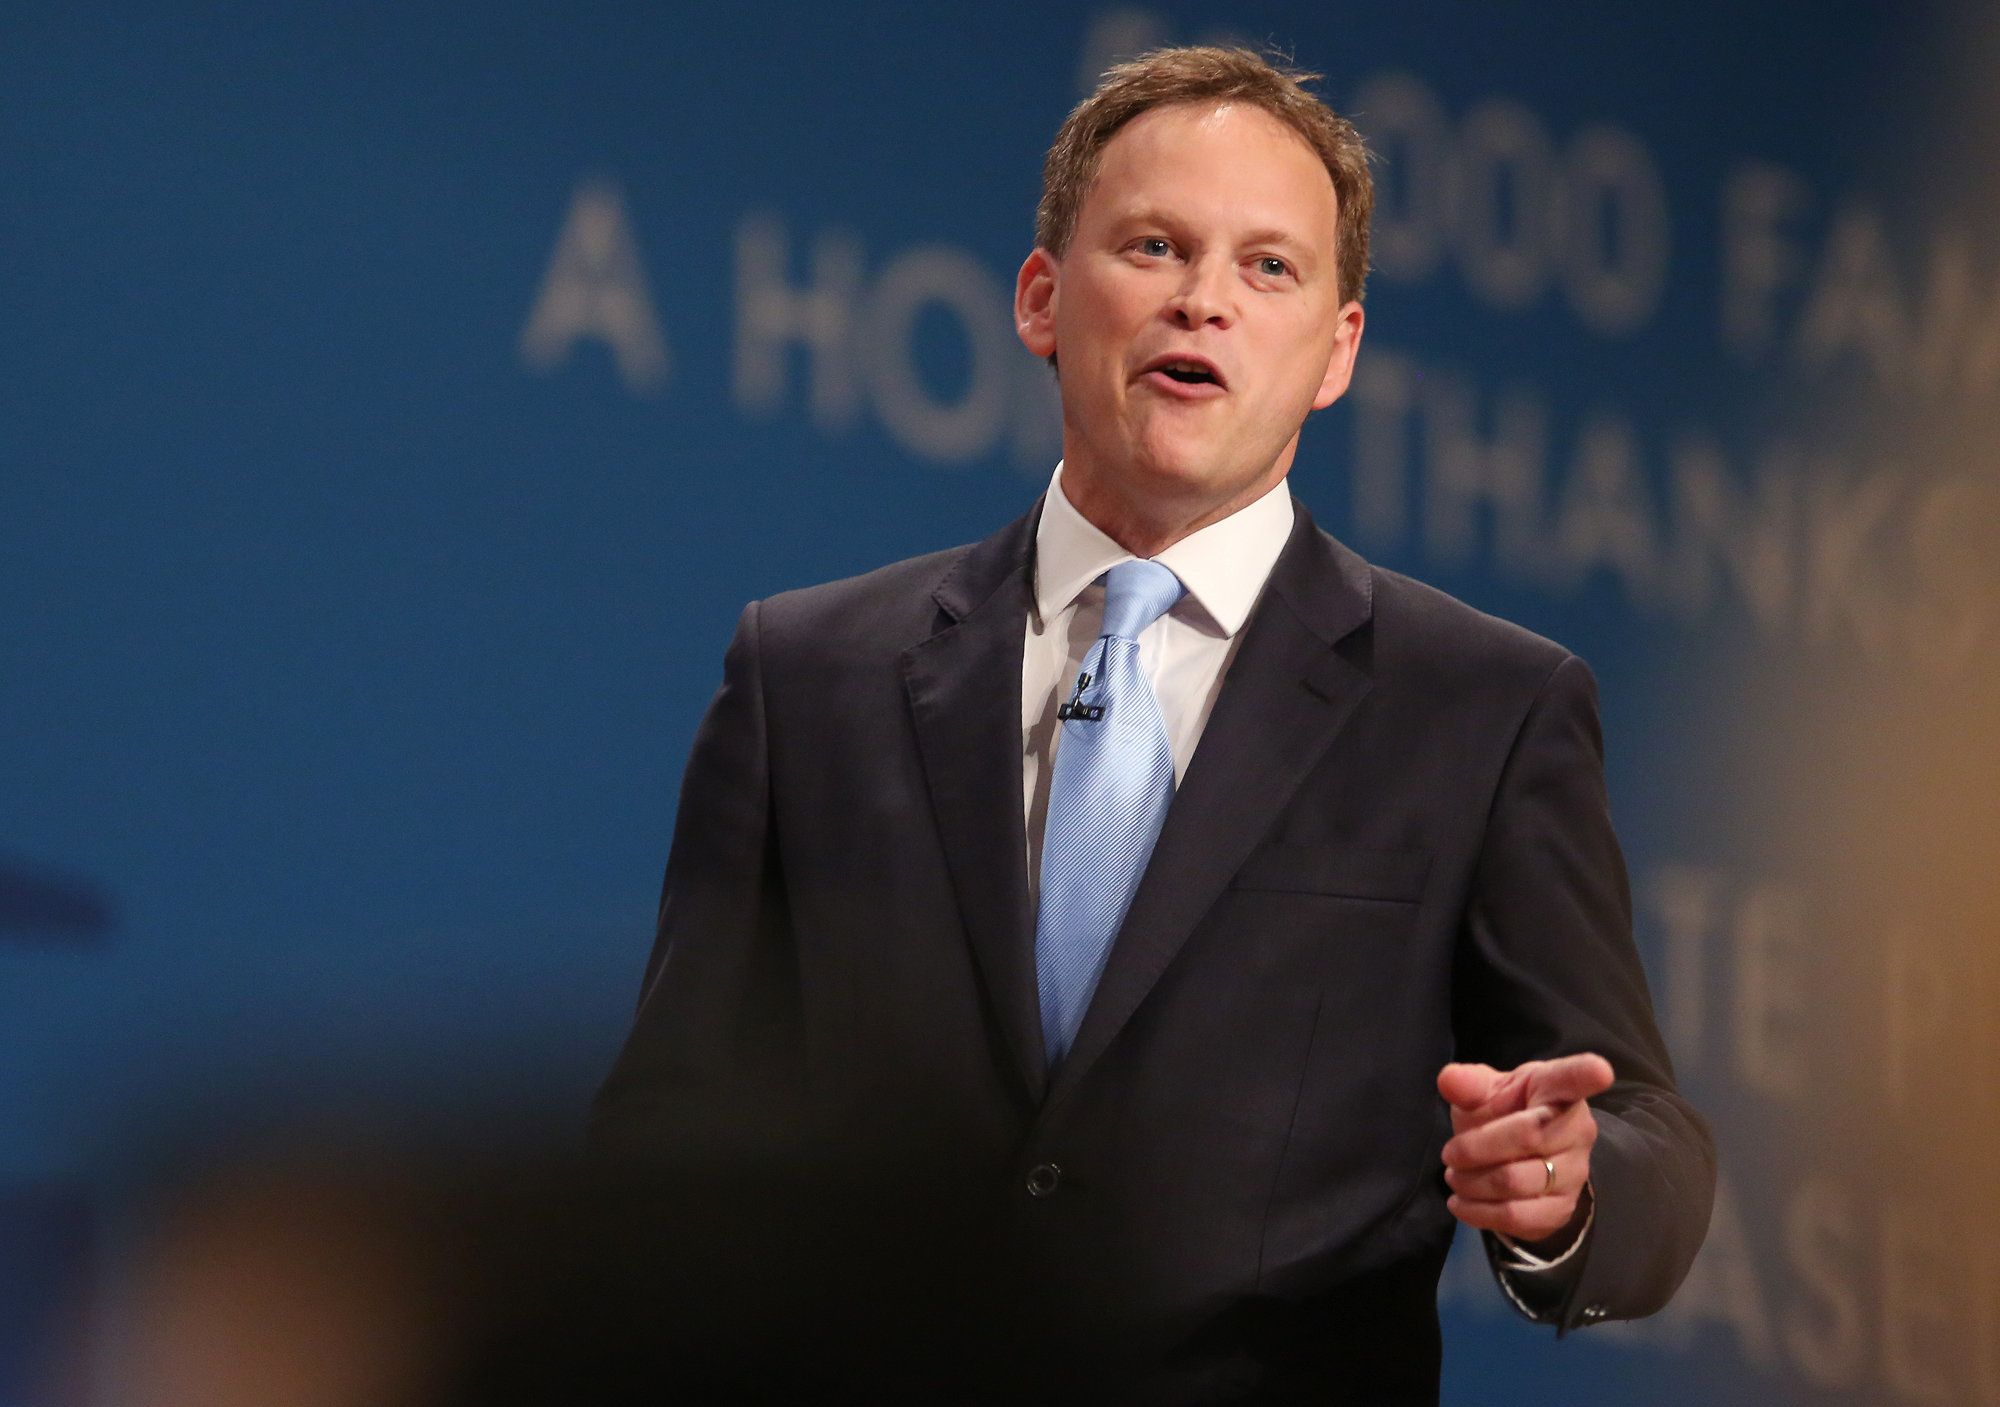 Theresa May Cannot Pretend She Is Margaret Thatcher, Grant Shapps Warns